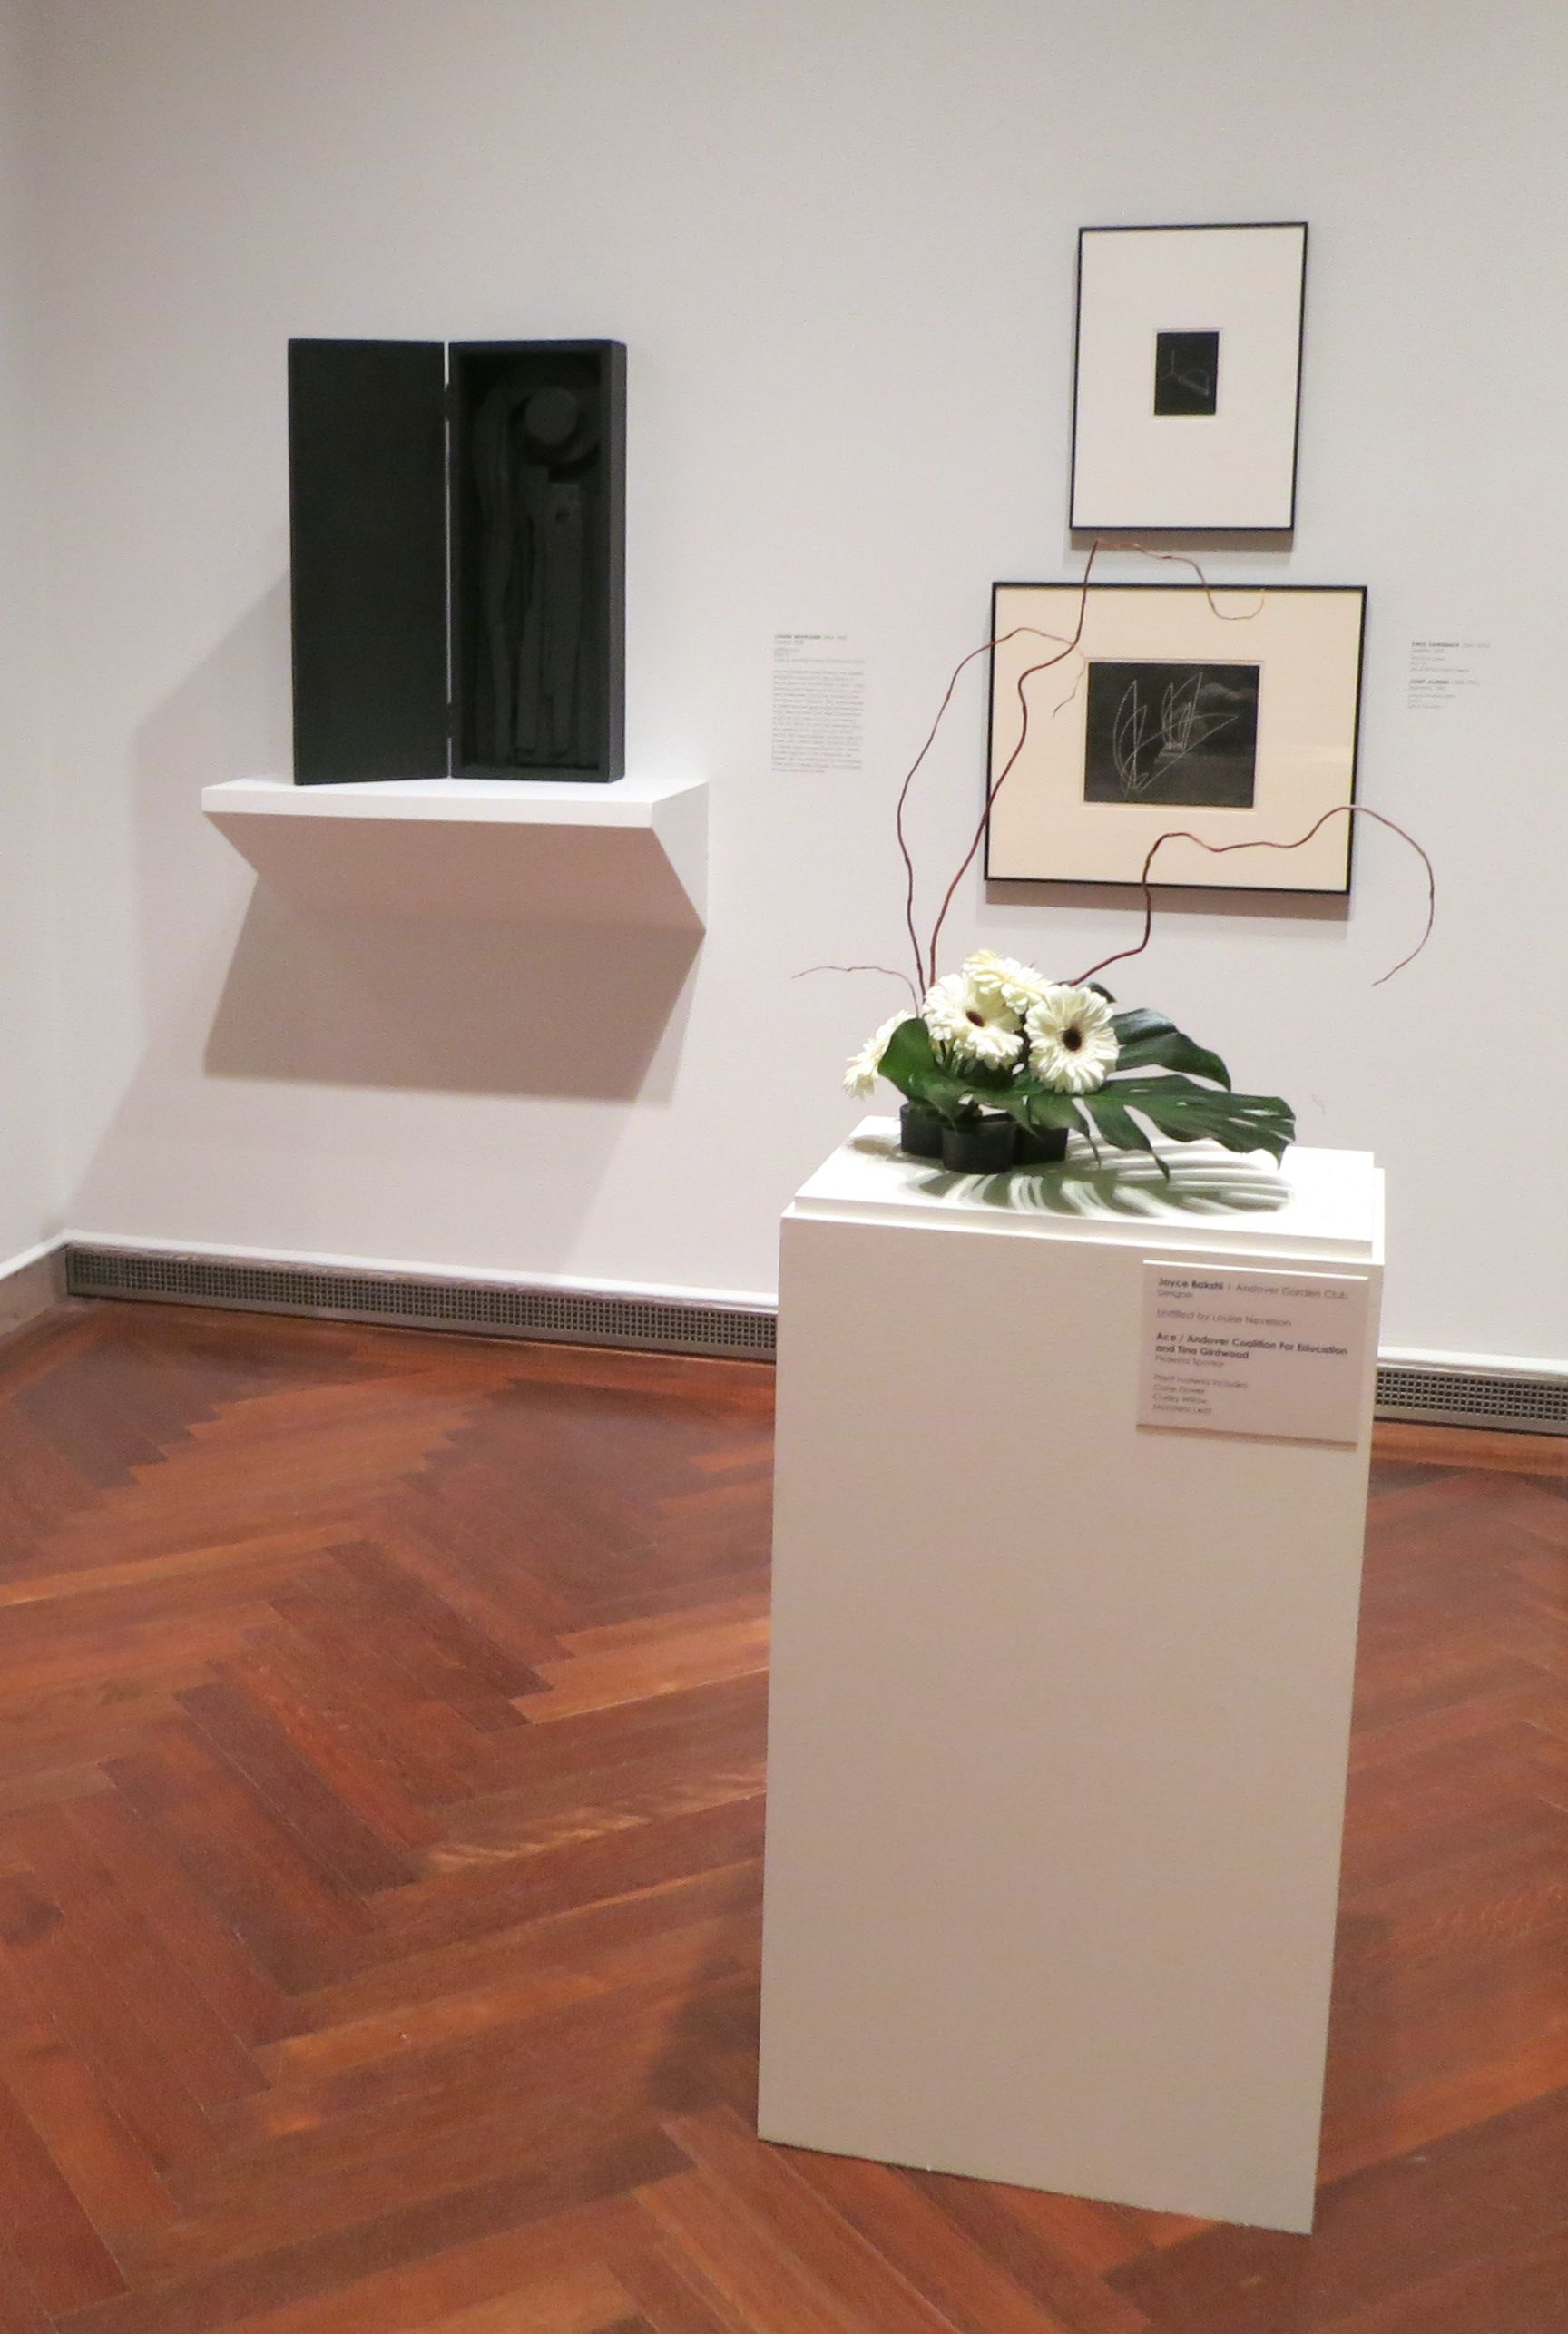 Gallery view: floral designer: Joyce Bakshi, Andover Garden Club | art: Louise Nevelson, Untitled | plant material: Cone Flower, Curley Willow, Monstera Leaf